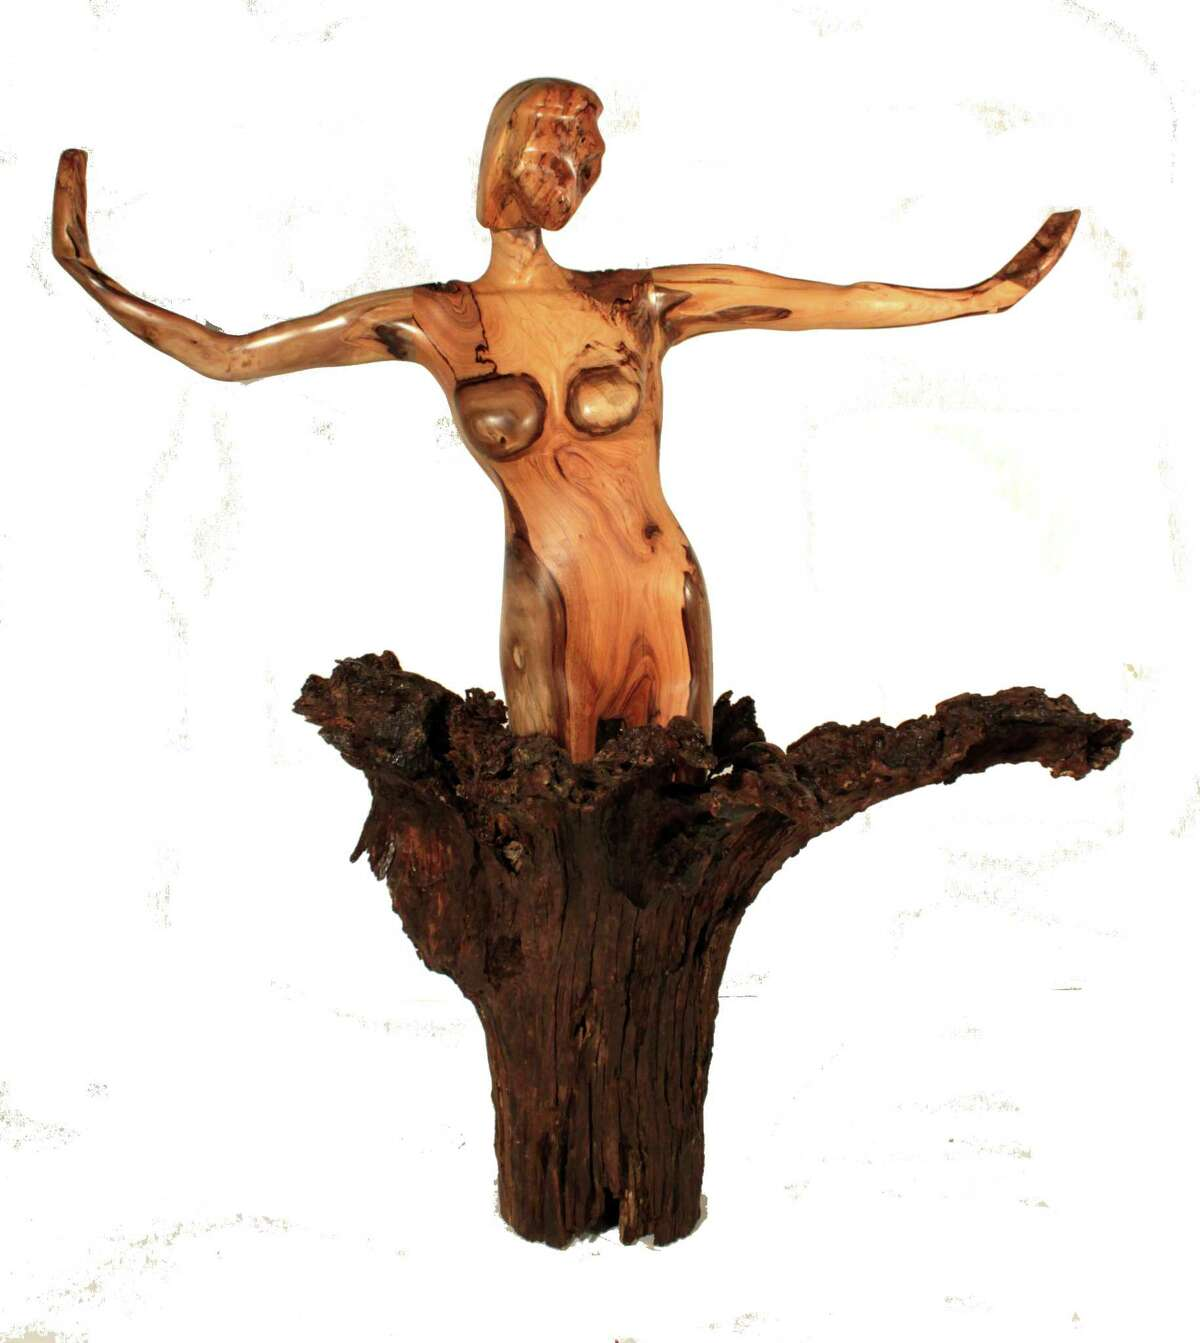 Fredericksburg sculptor Dan Pfeiffer calls this piece Emerging Genesis because he carved her as the beginning of life; she s coming out of the earth.